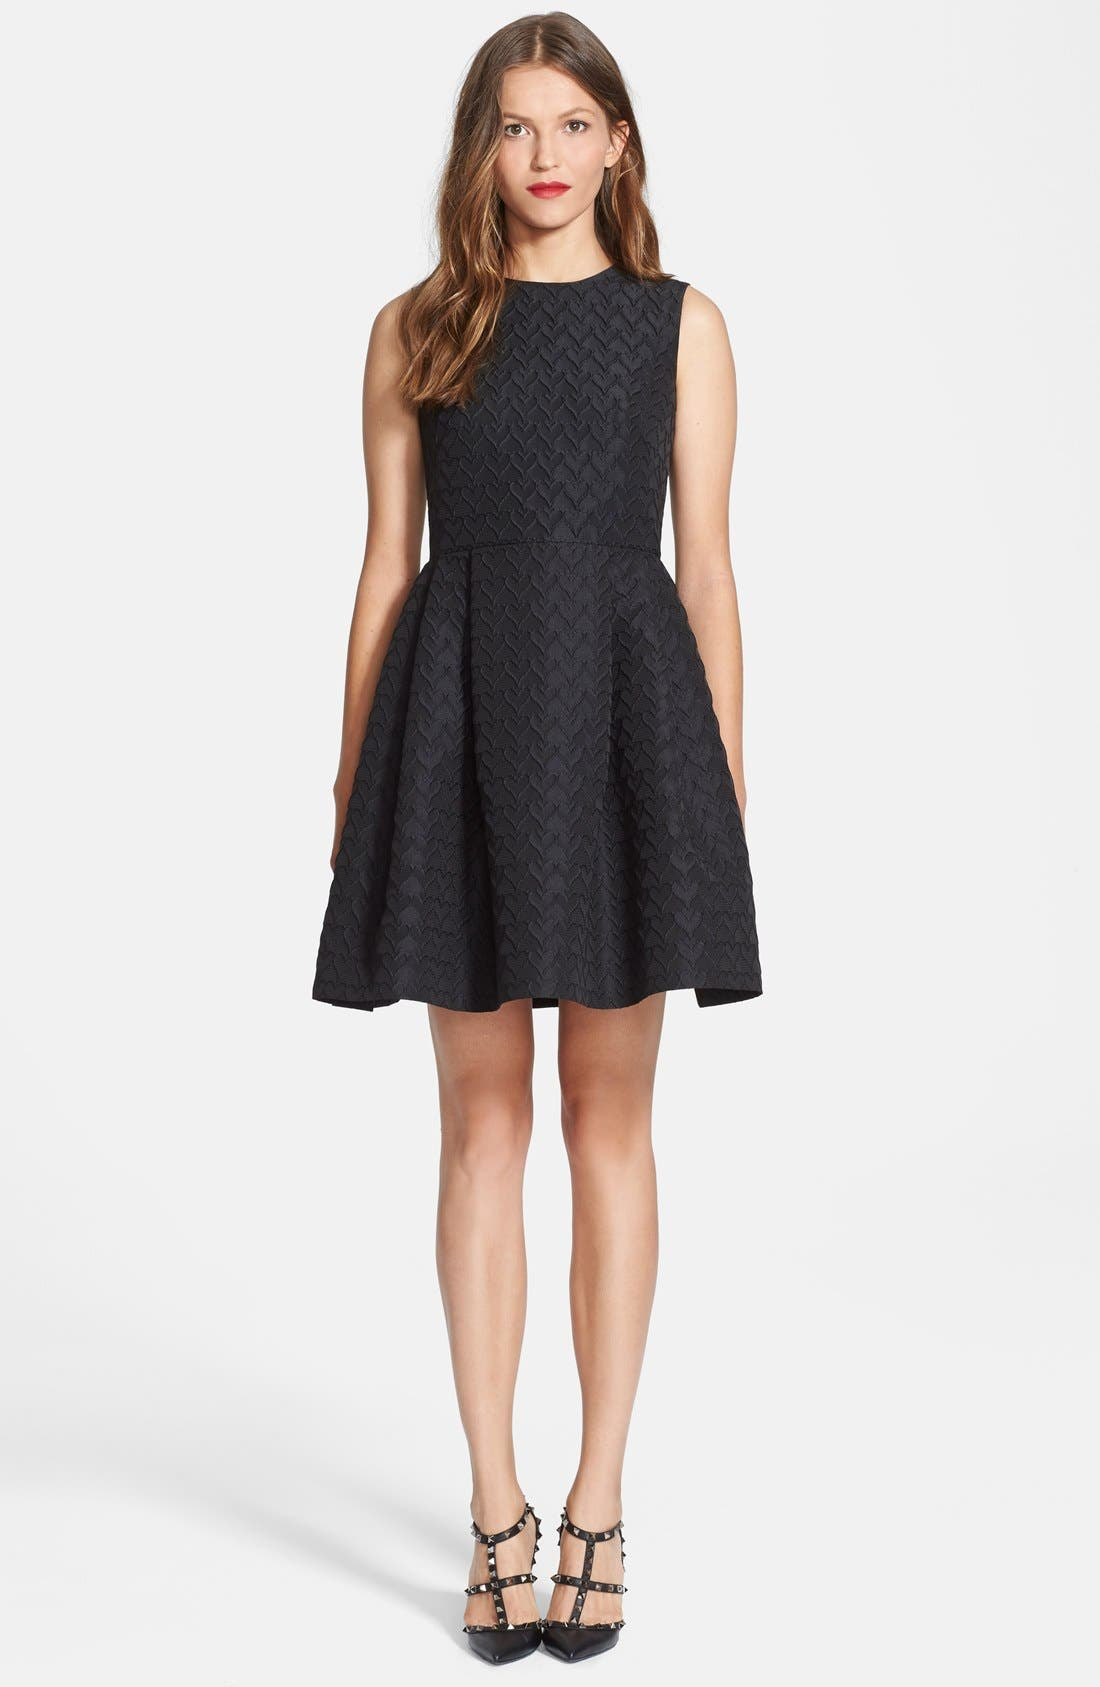 Alternate Image 1 Selected - RED Valentino Jacquard Faille Fit & Flare Dress